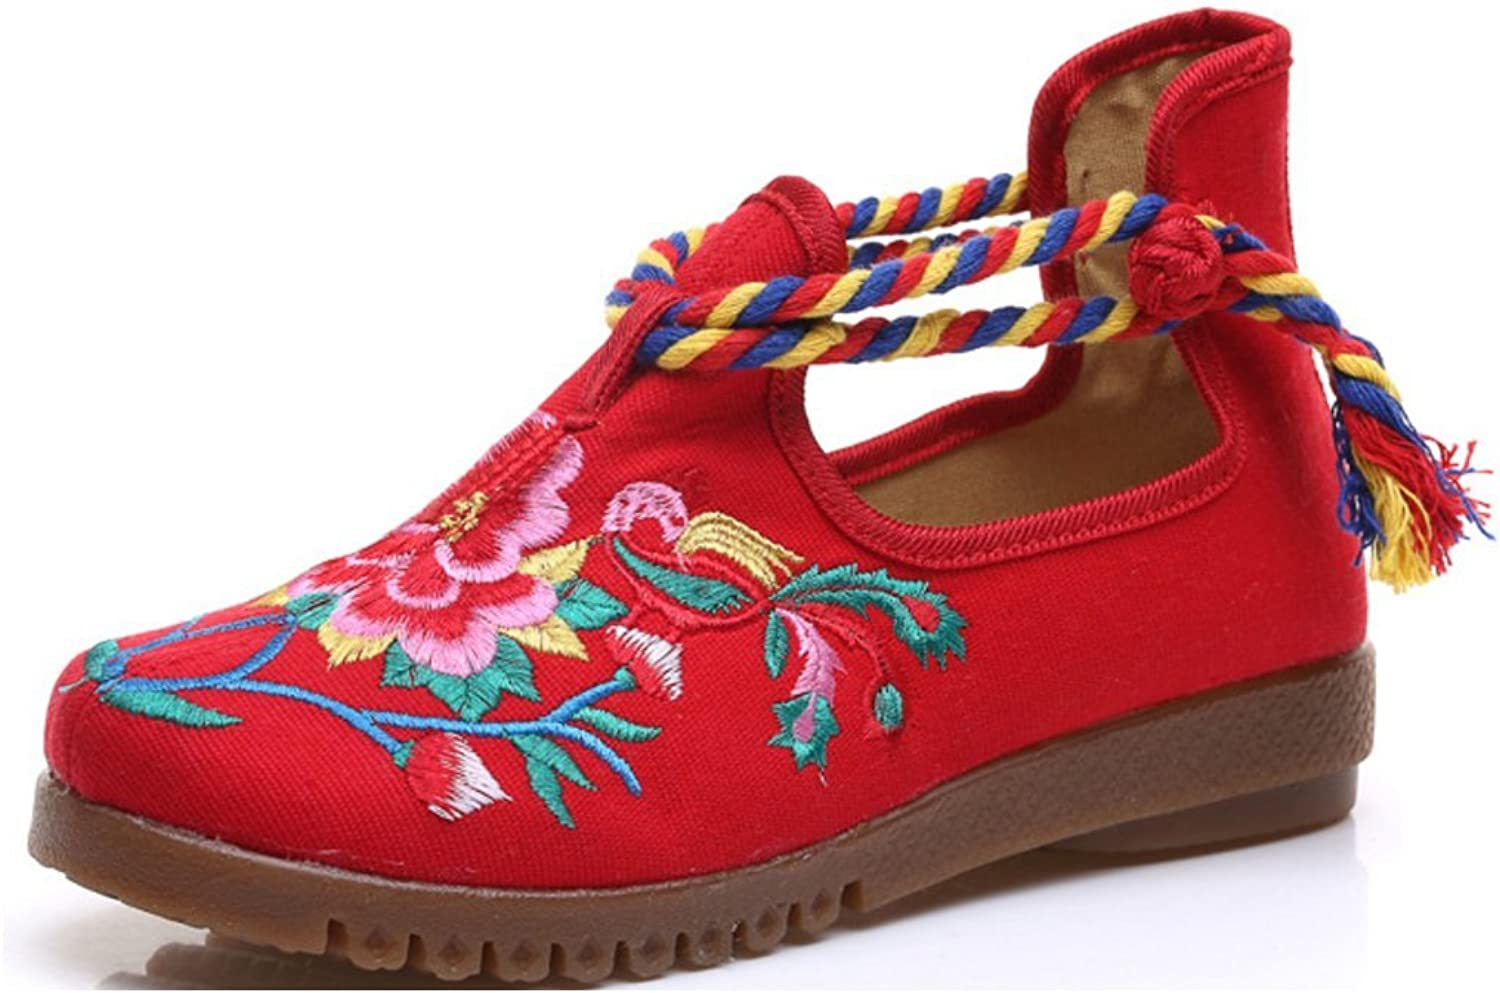 Tianrui Crown Womens Embroidered Slip-on Loafer Flat shoes